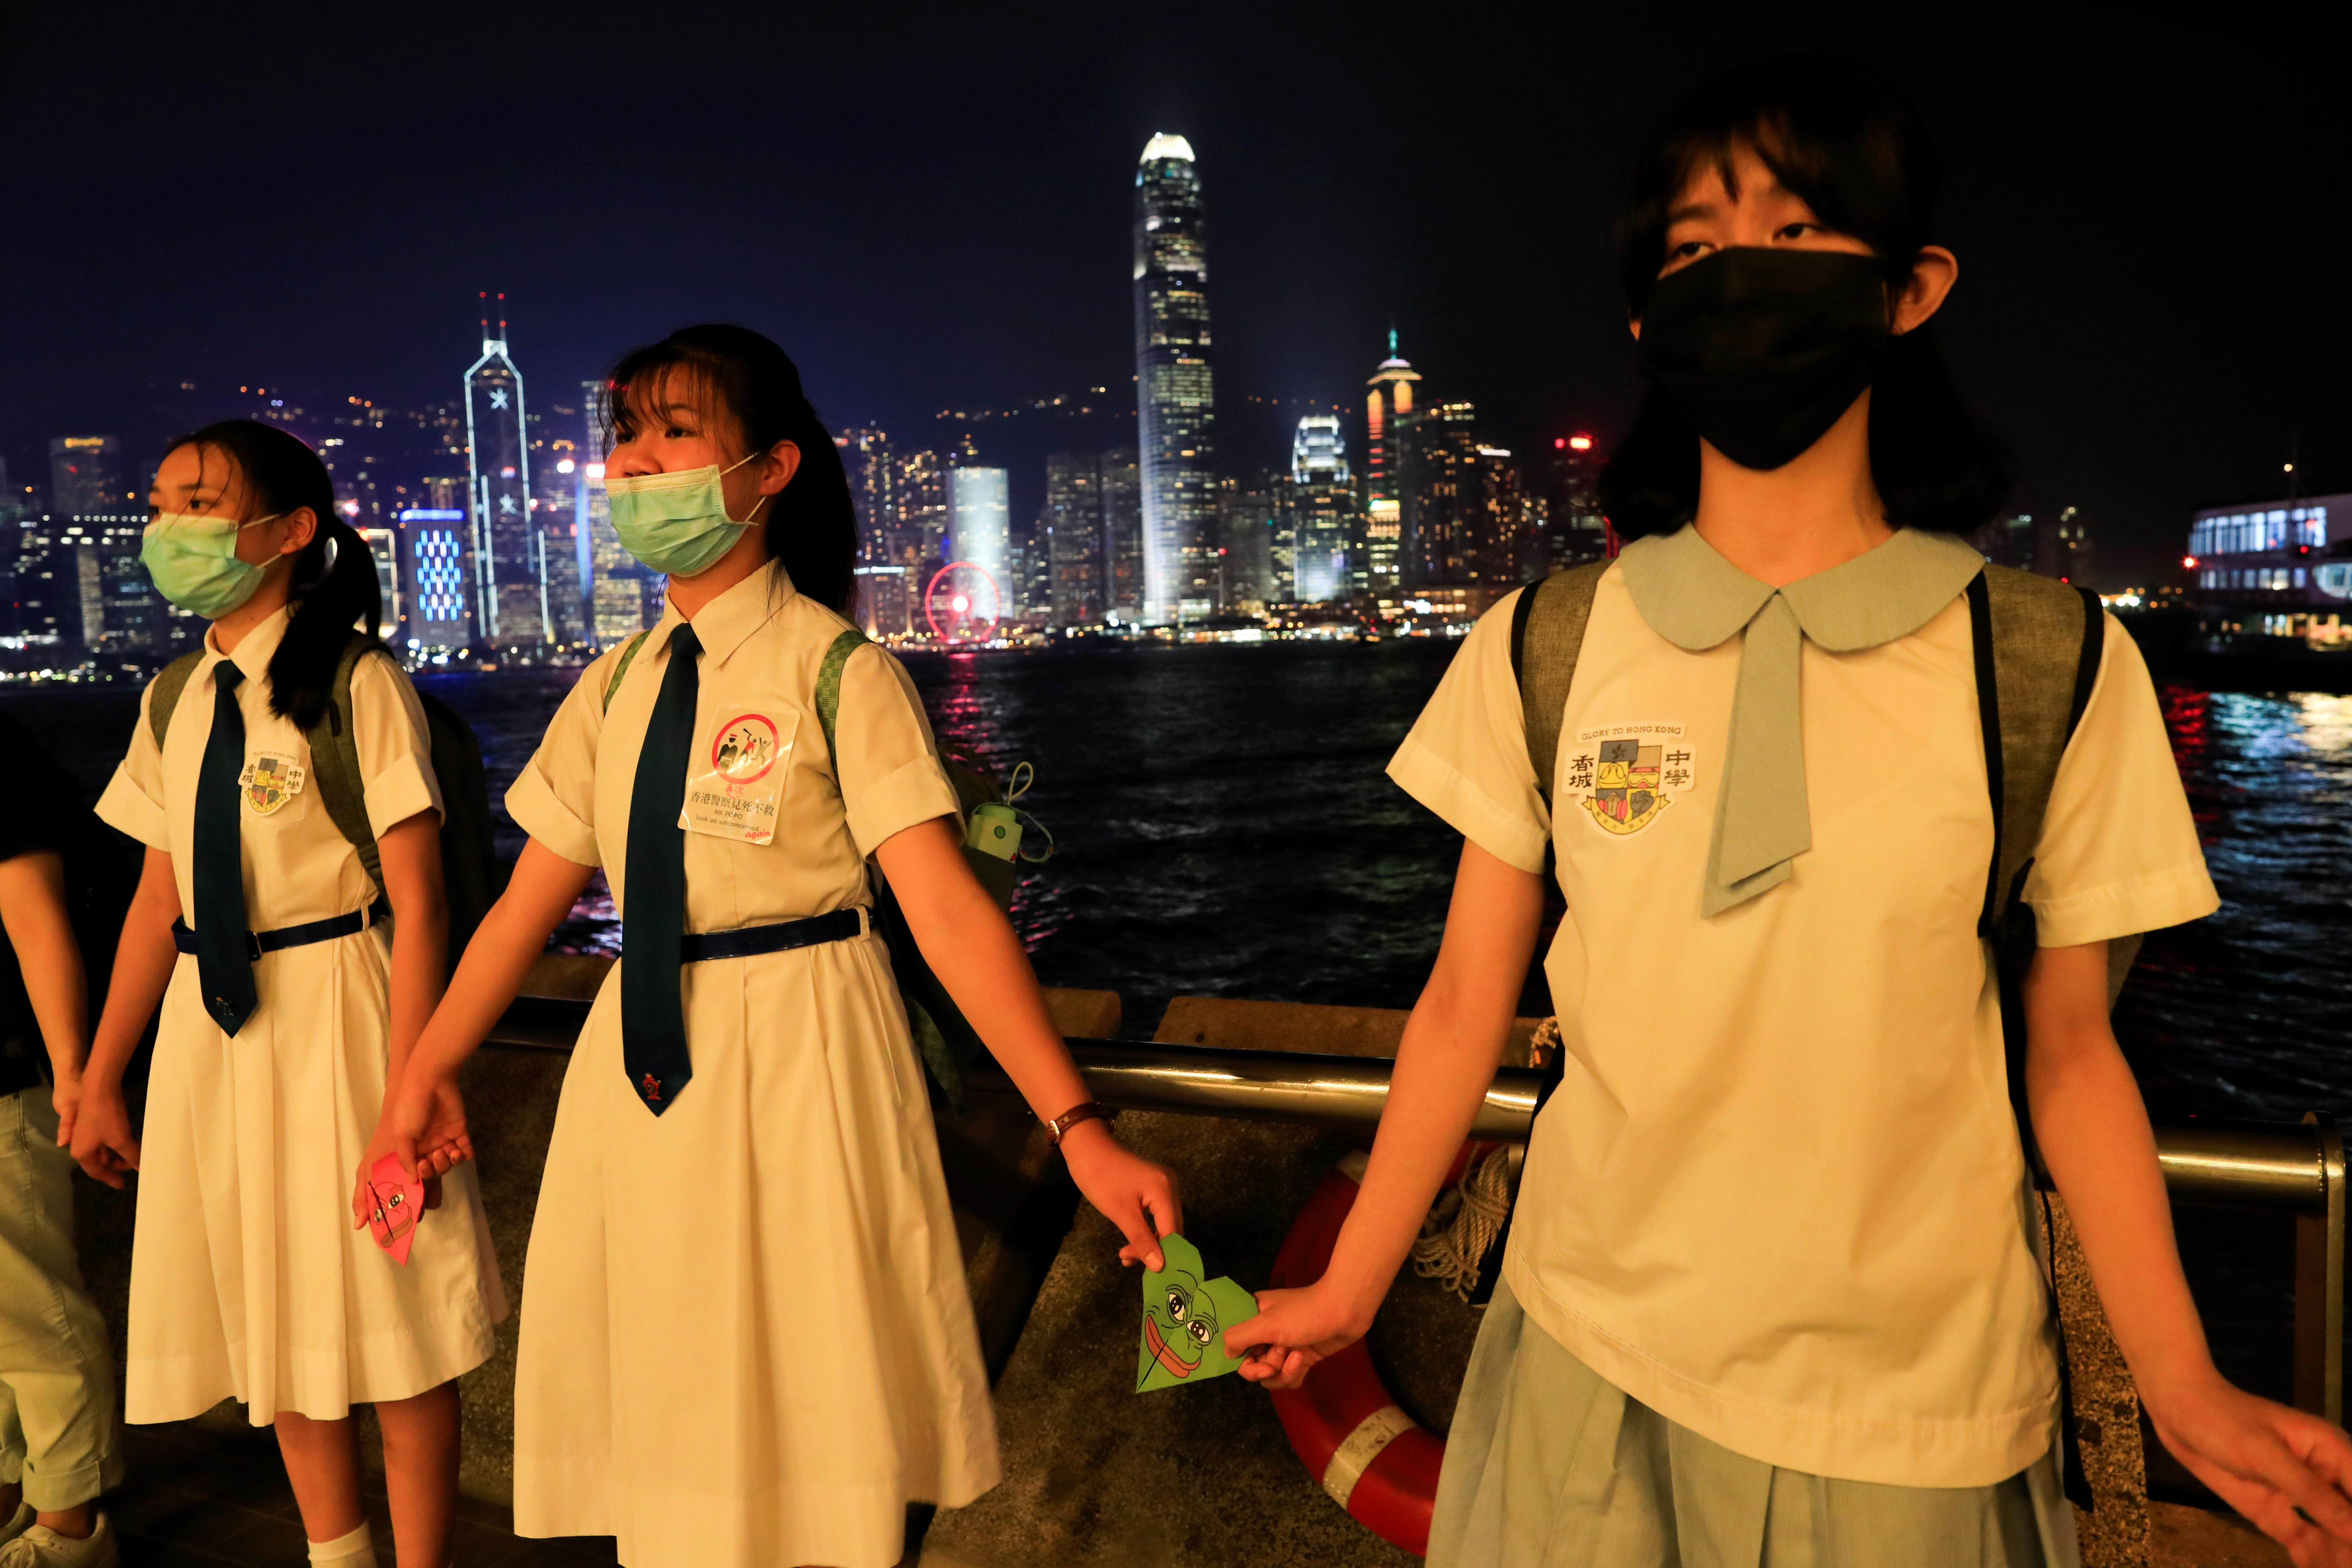 Hong Kong braces for 'violent attack' on sensitive Chinese anniversary: police